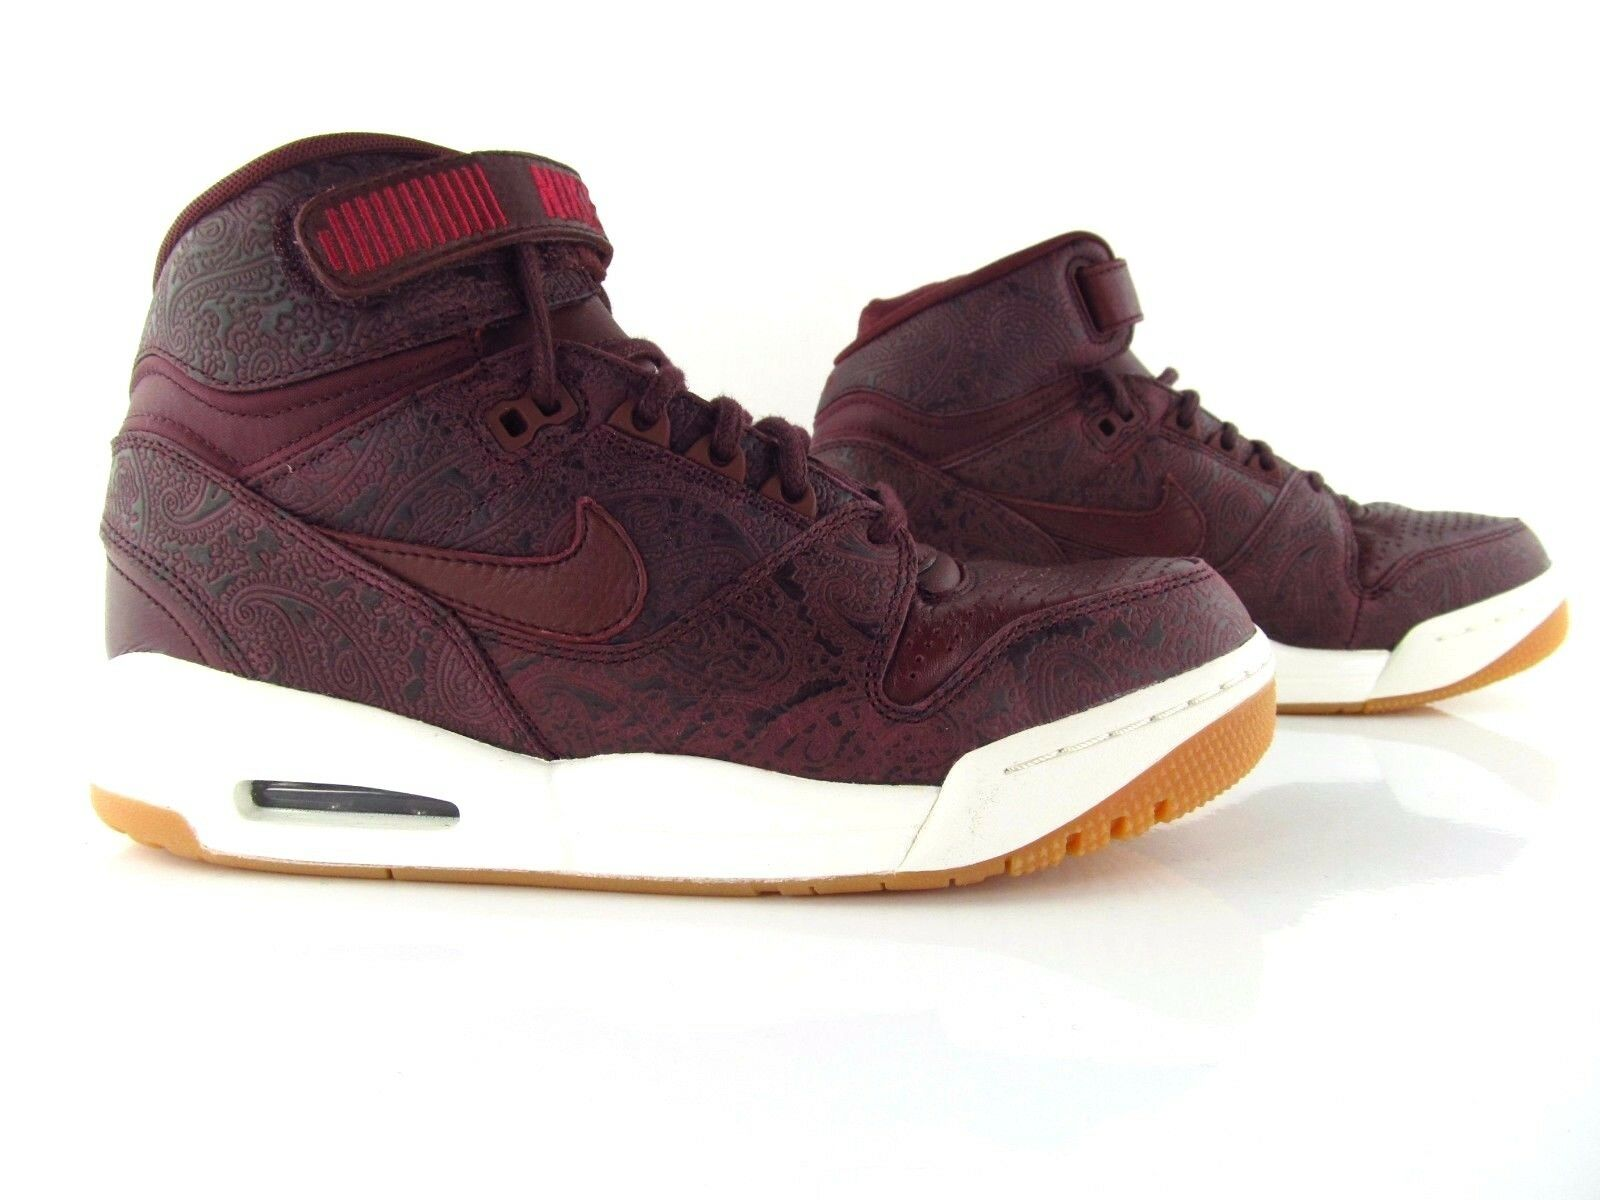 Nike Air Revolution Sneakerboot Premium Essential Sneakerboot Revolution Wedge US_7.5 UK_5 Eur 38.5 7207fc